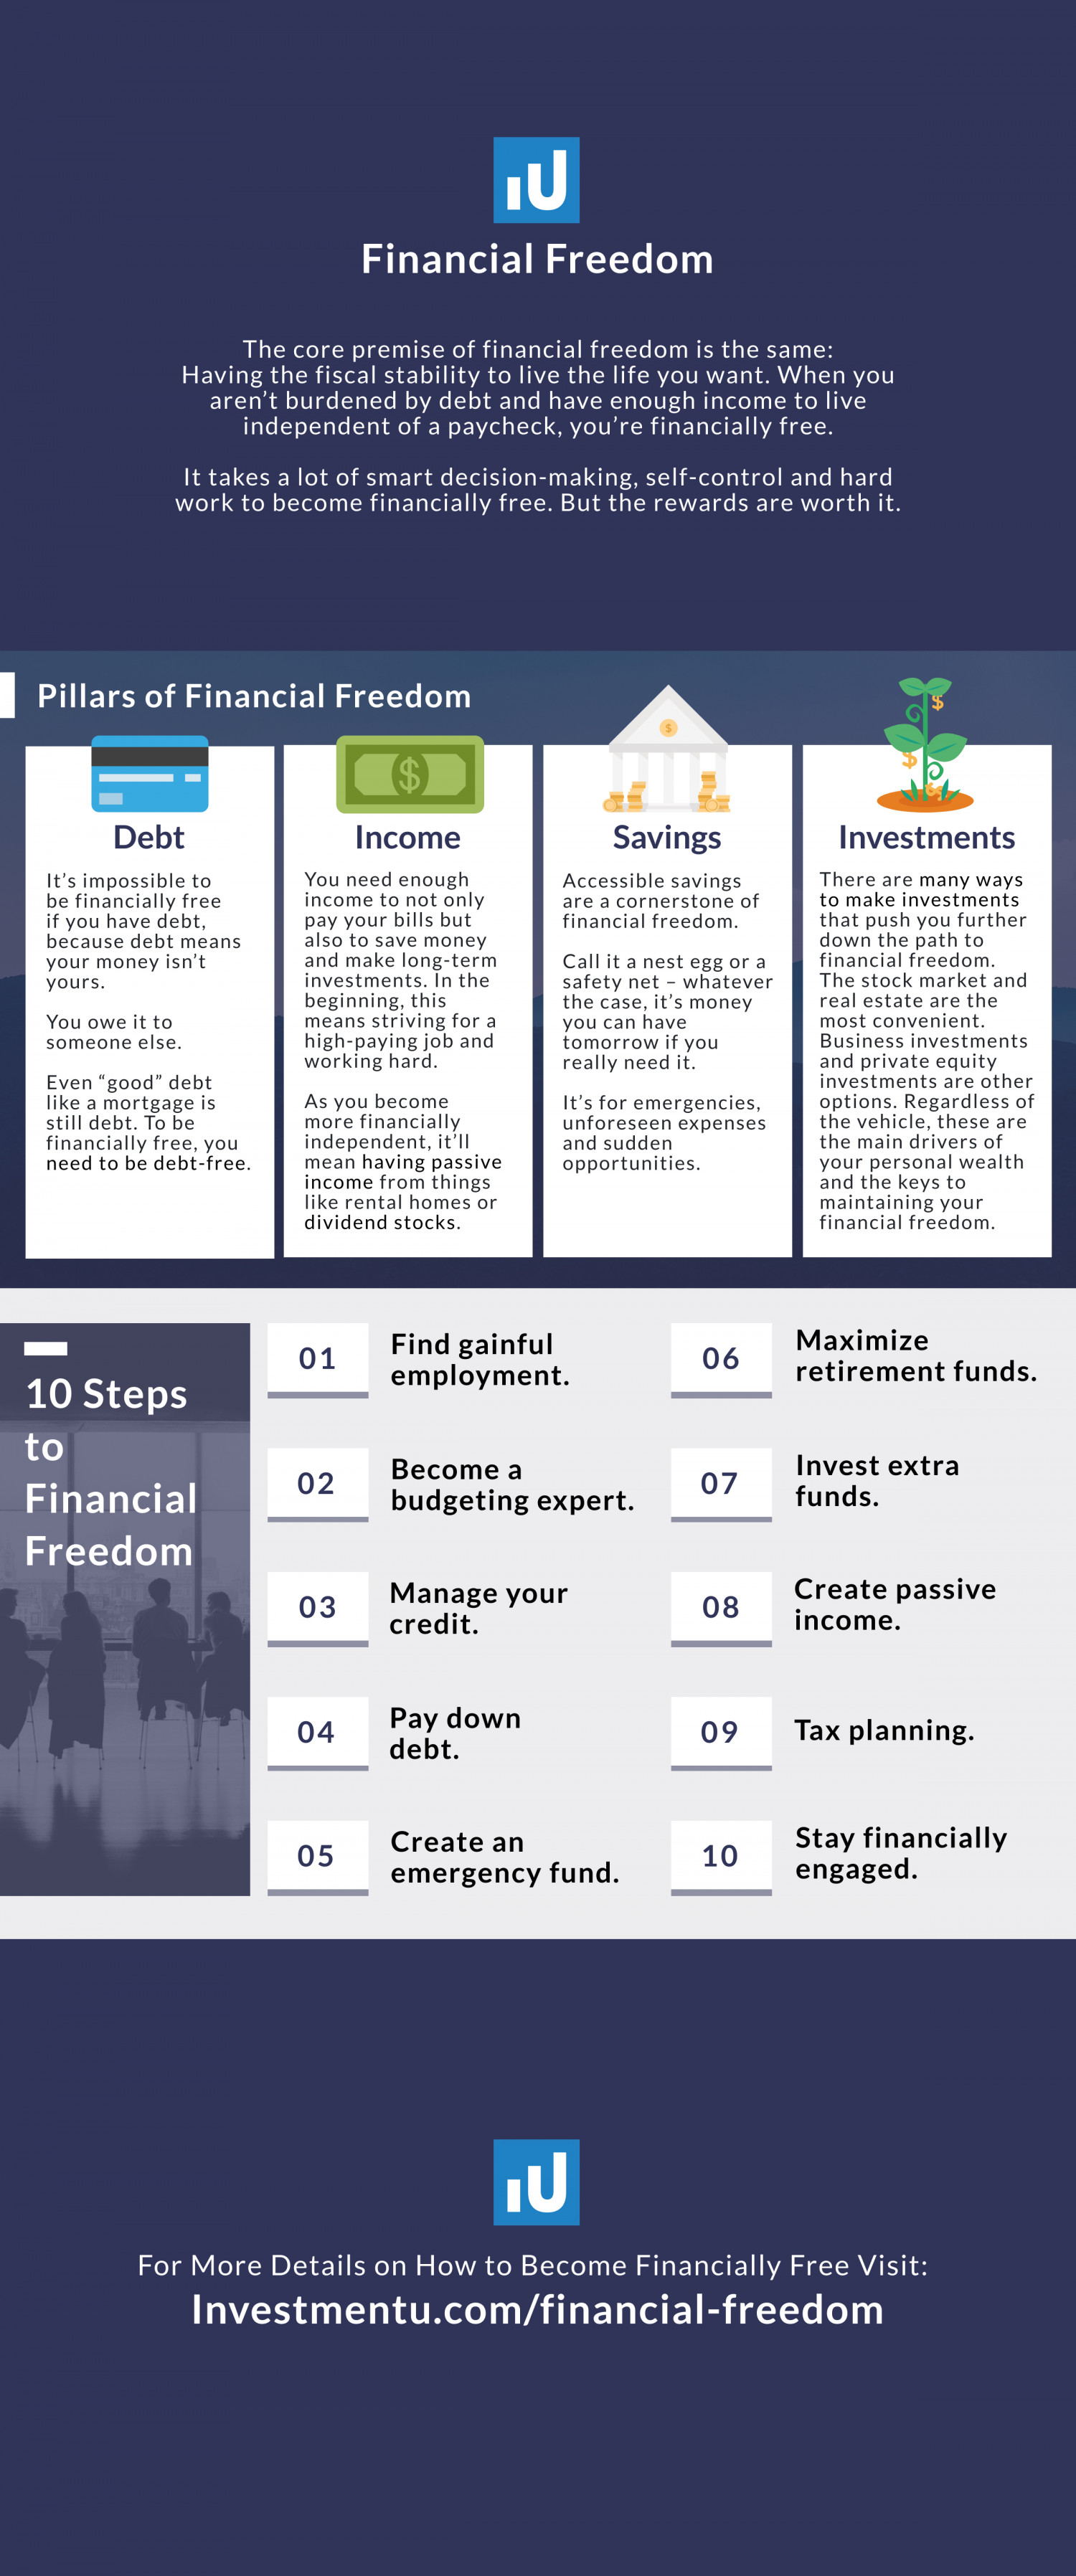 Financial Freedom - Investment U Infographic